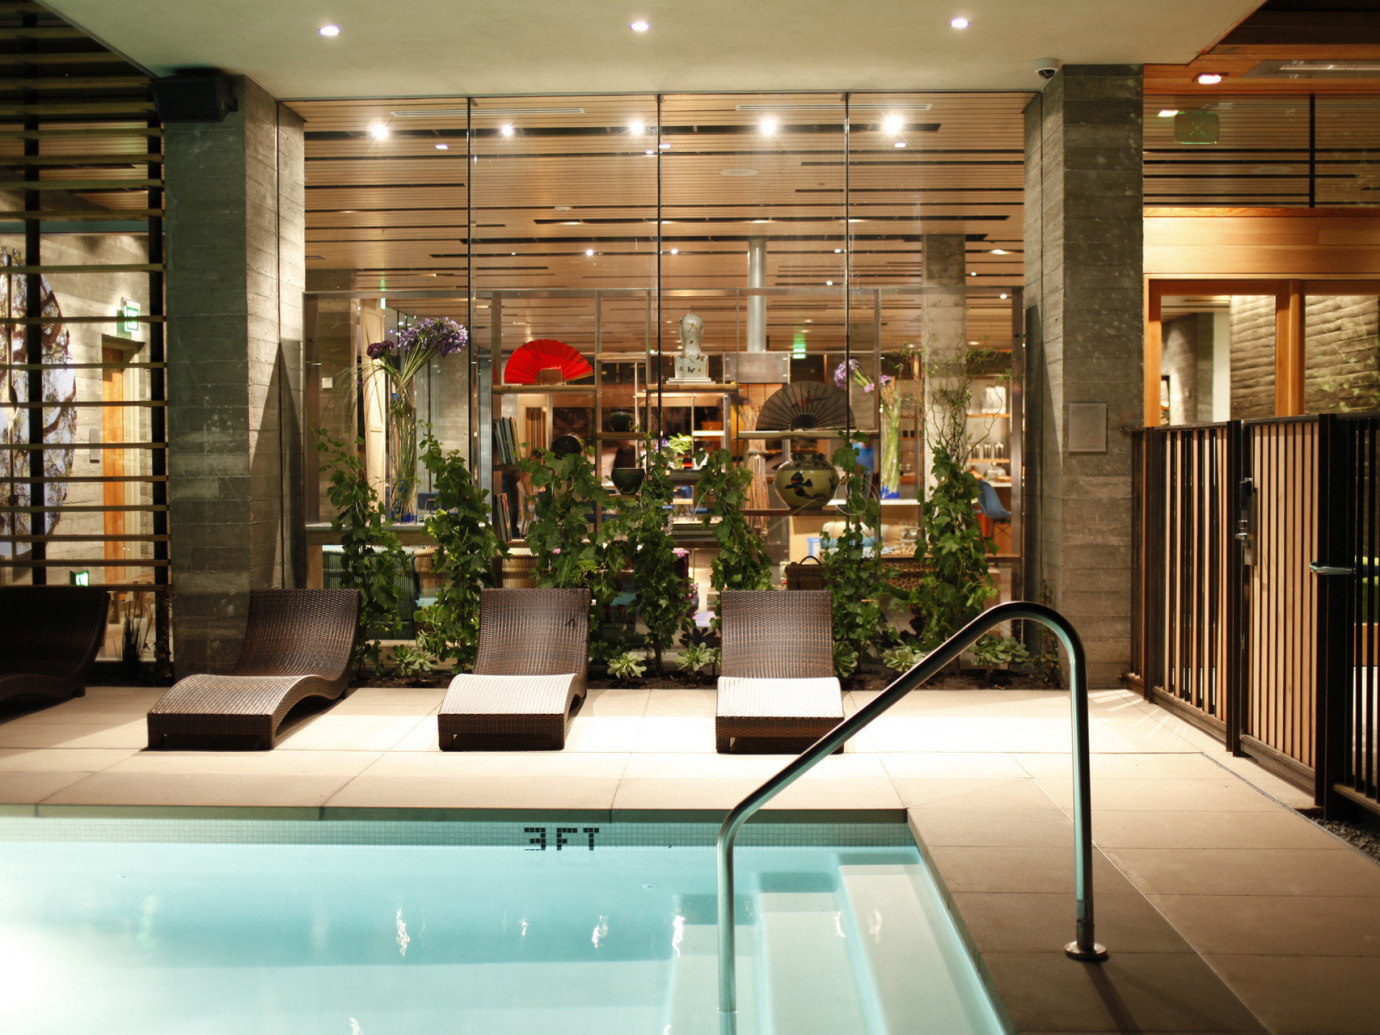 Pool and chairs inside at H2 Hotel